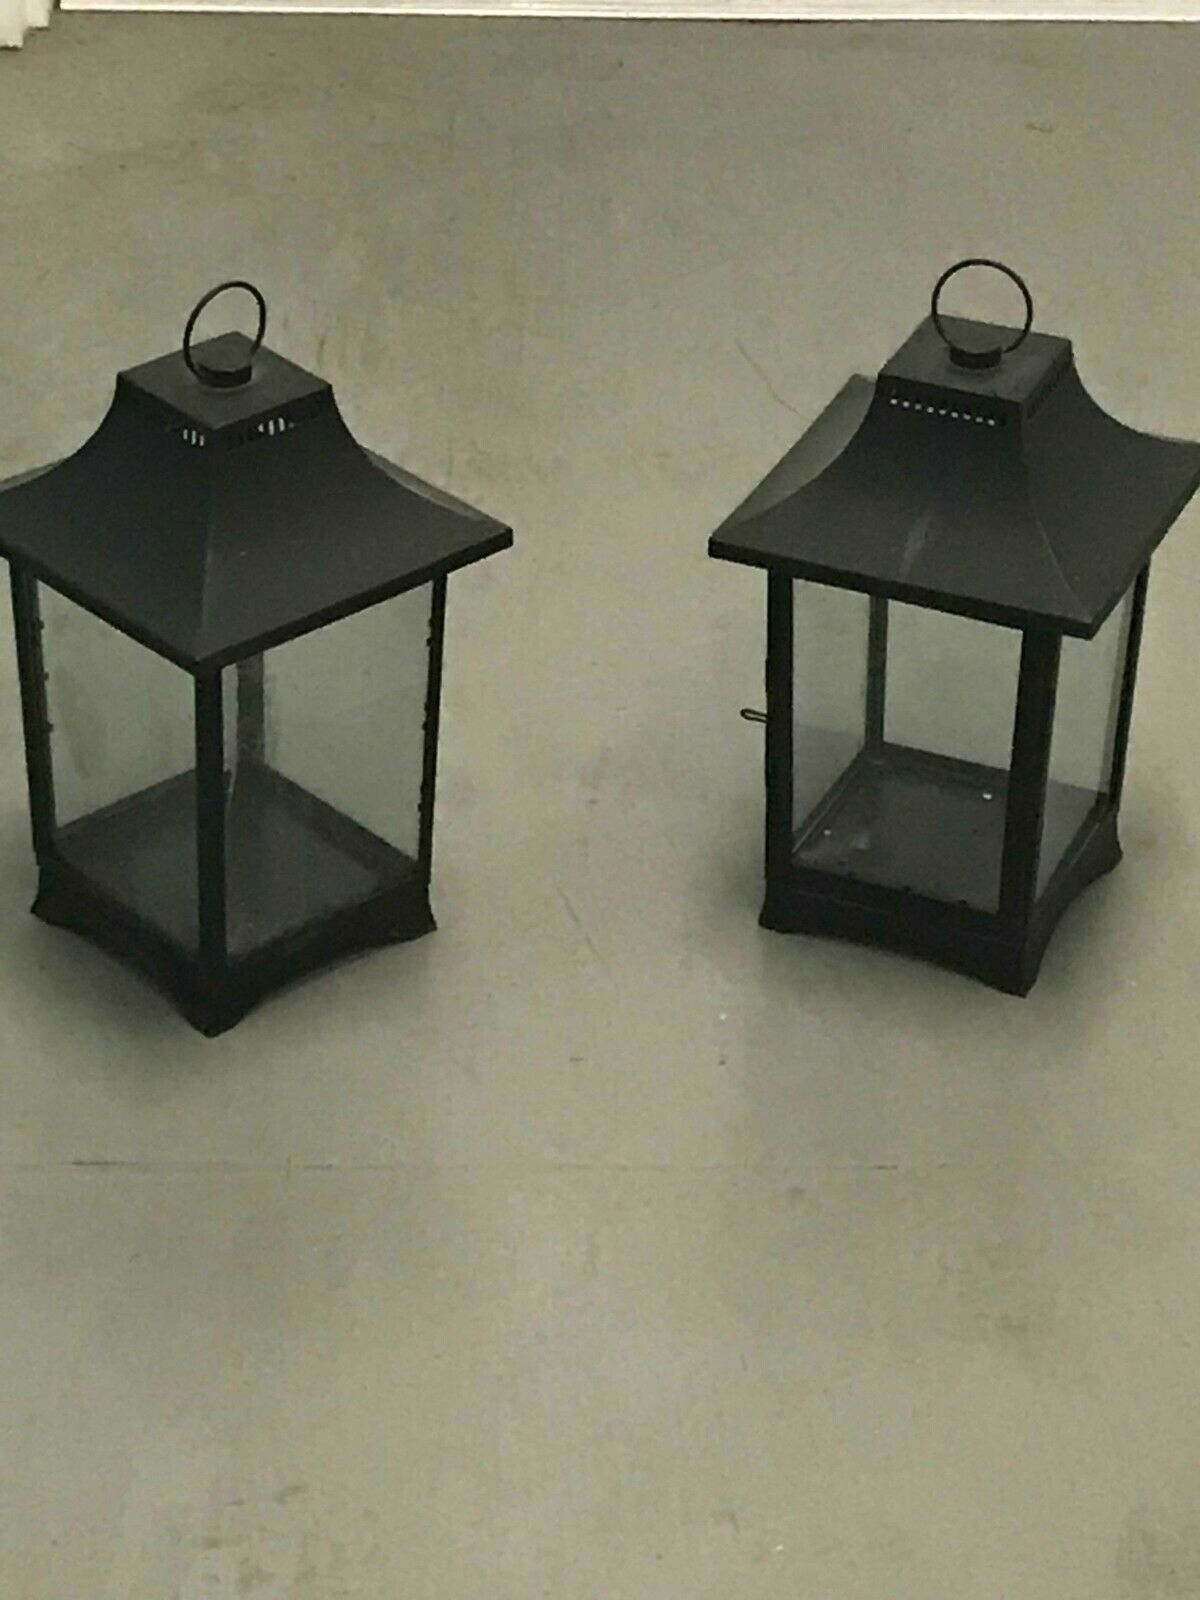 Https Ift Tt 33qidw9 Lantern Decor Ideas Of Lantern Decor Lantern Decor Lanterndecor Lantern Candle Holders Hanging Candle Lanterns Candle Lanterns